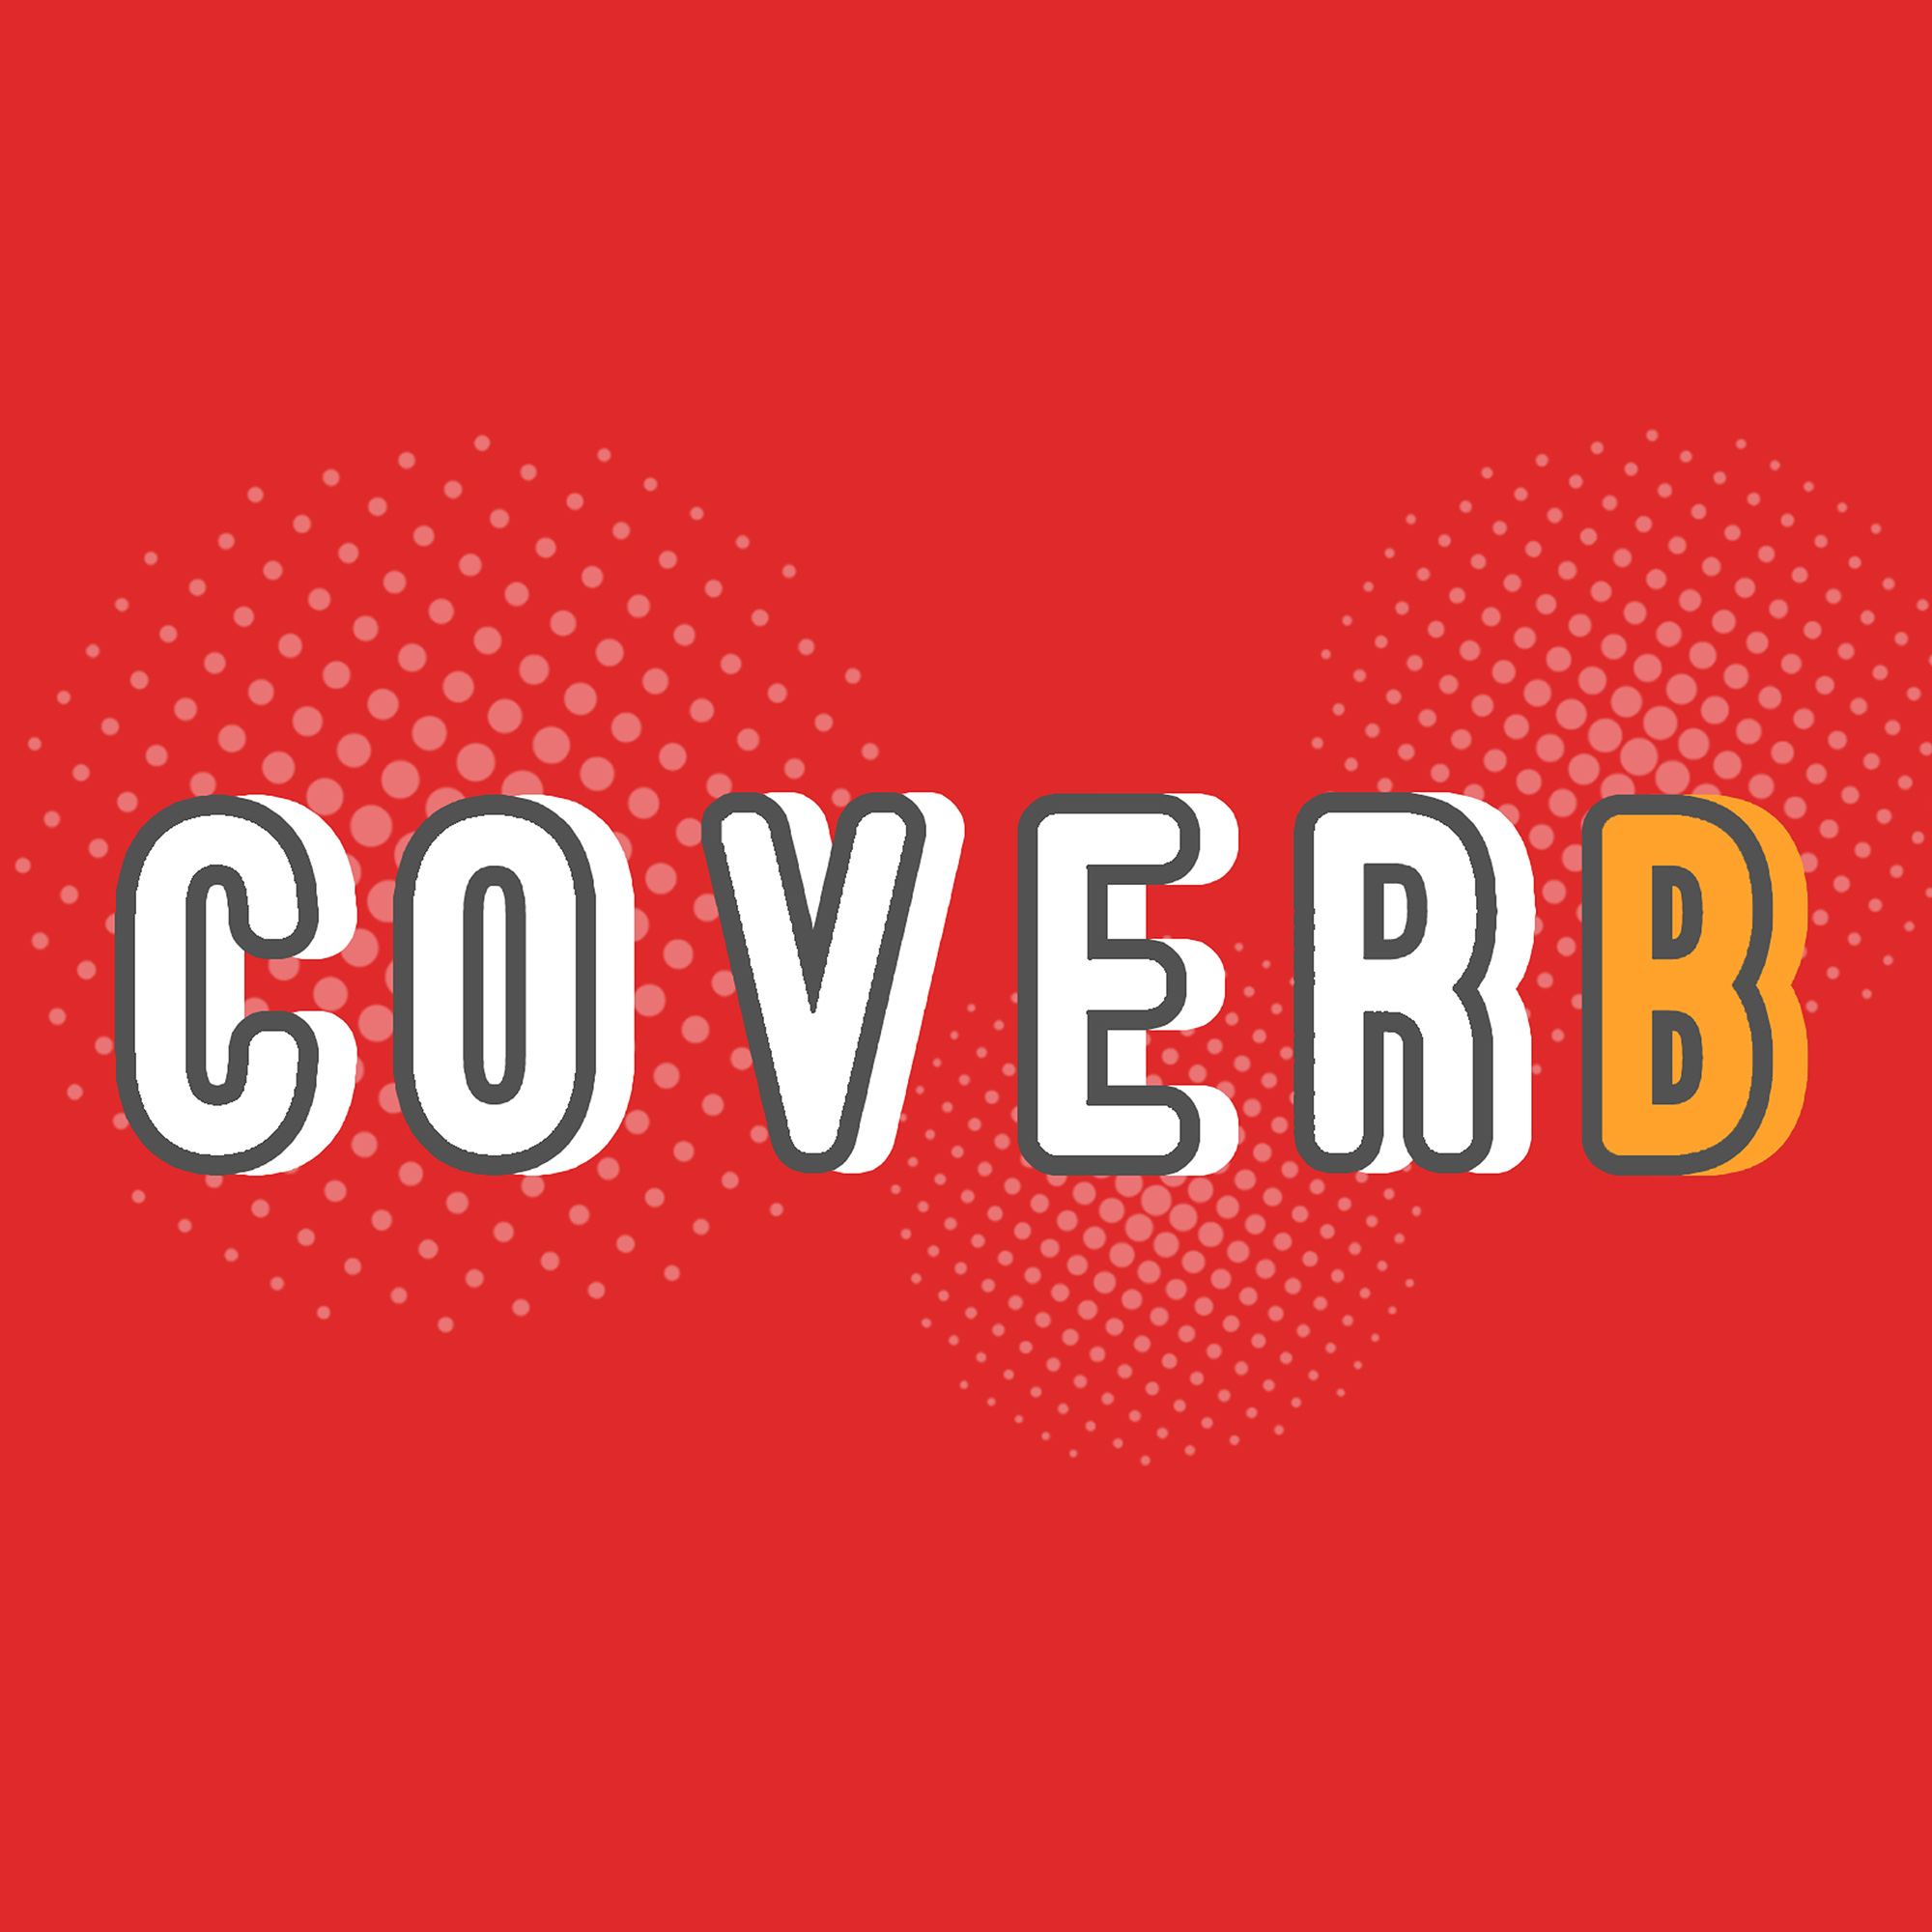 Cover B Podcast